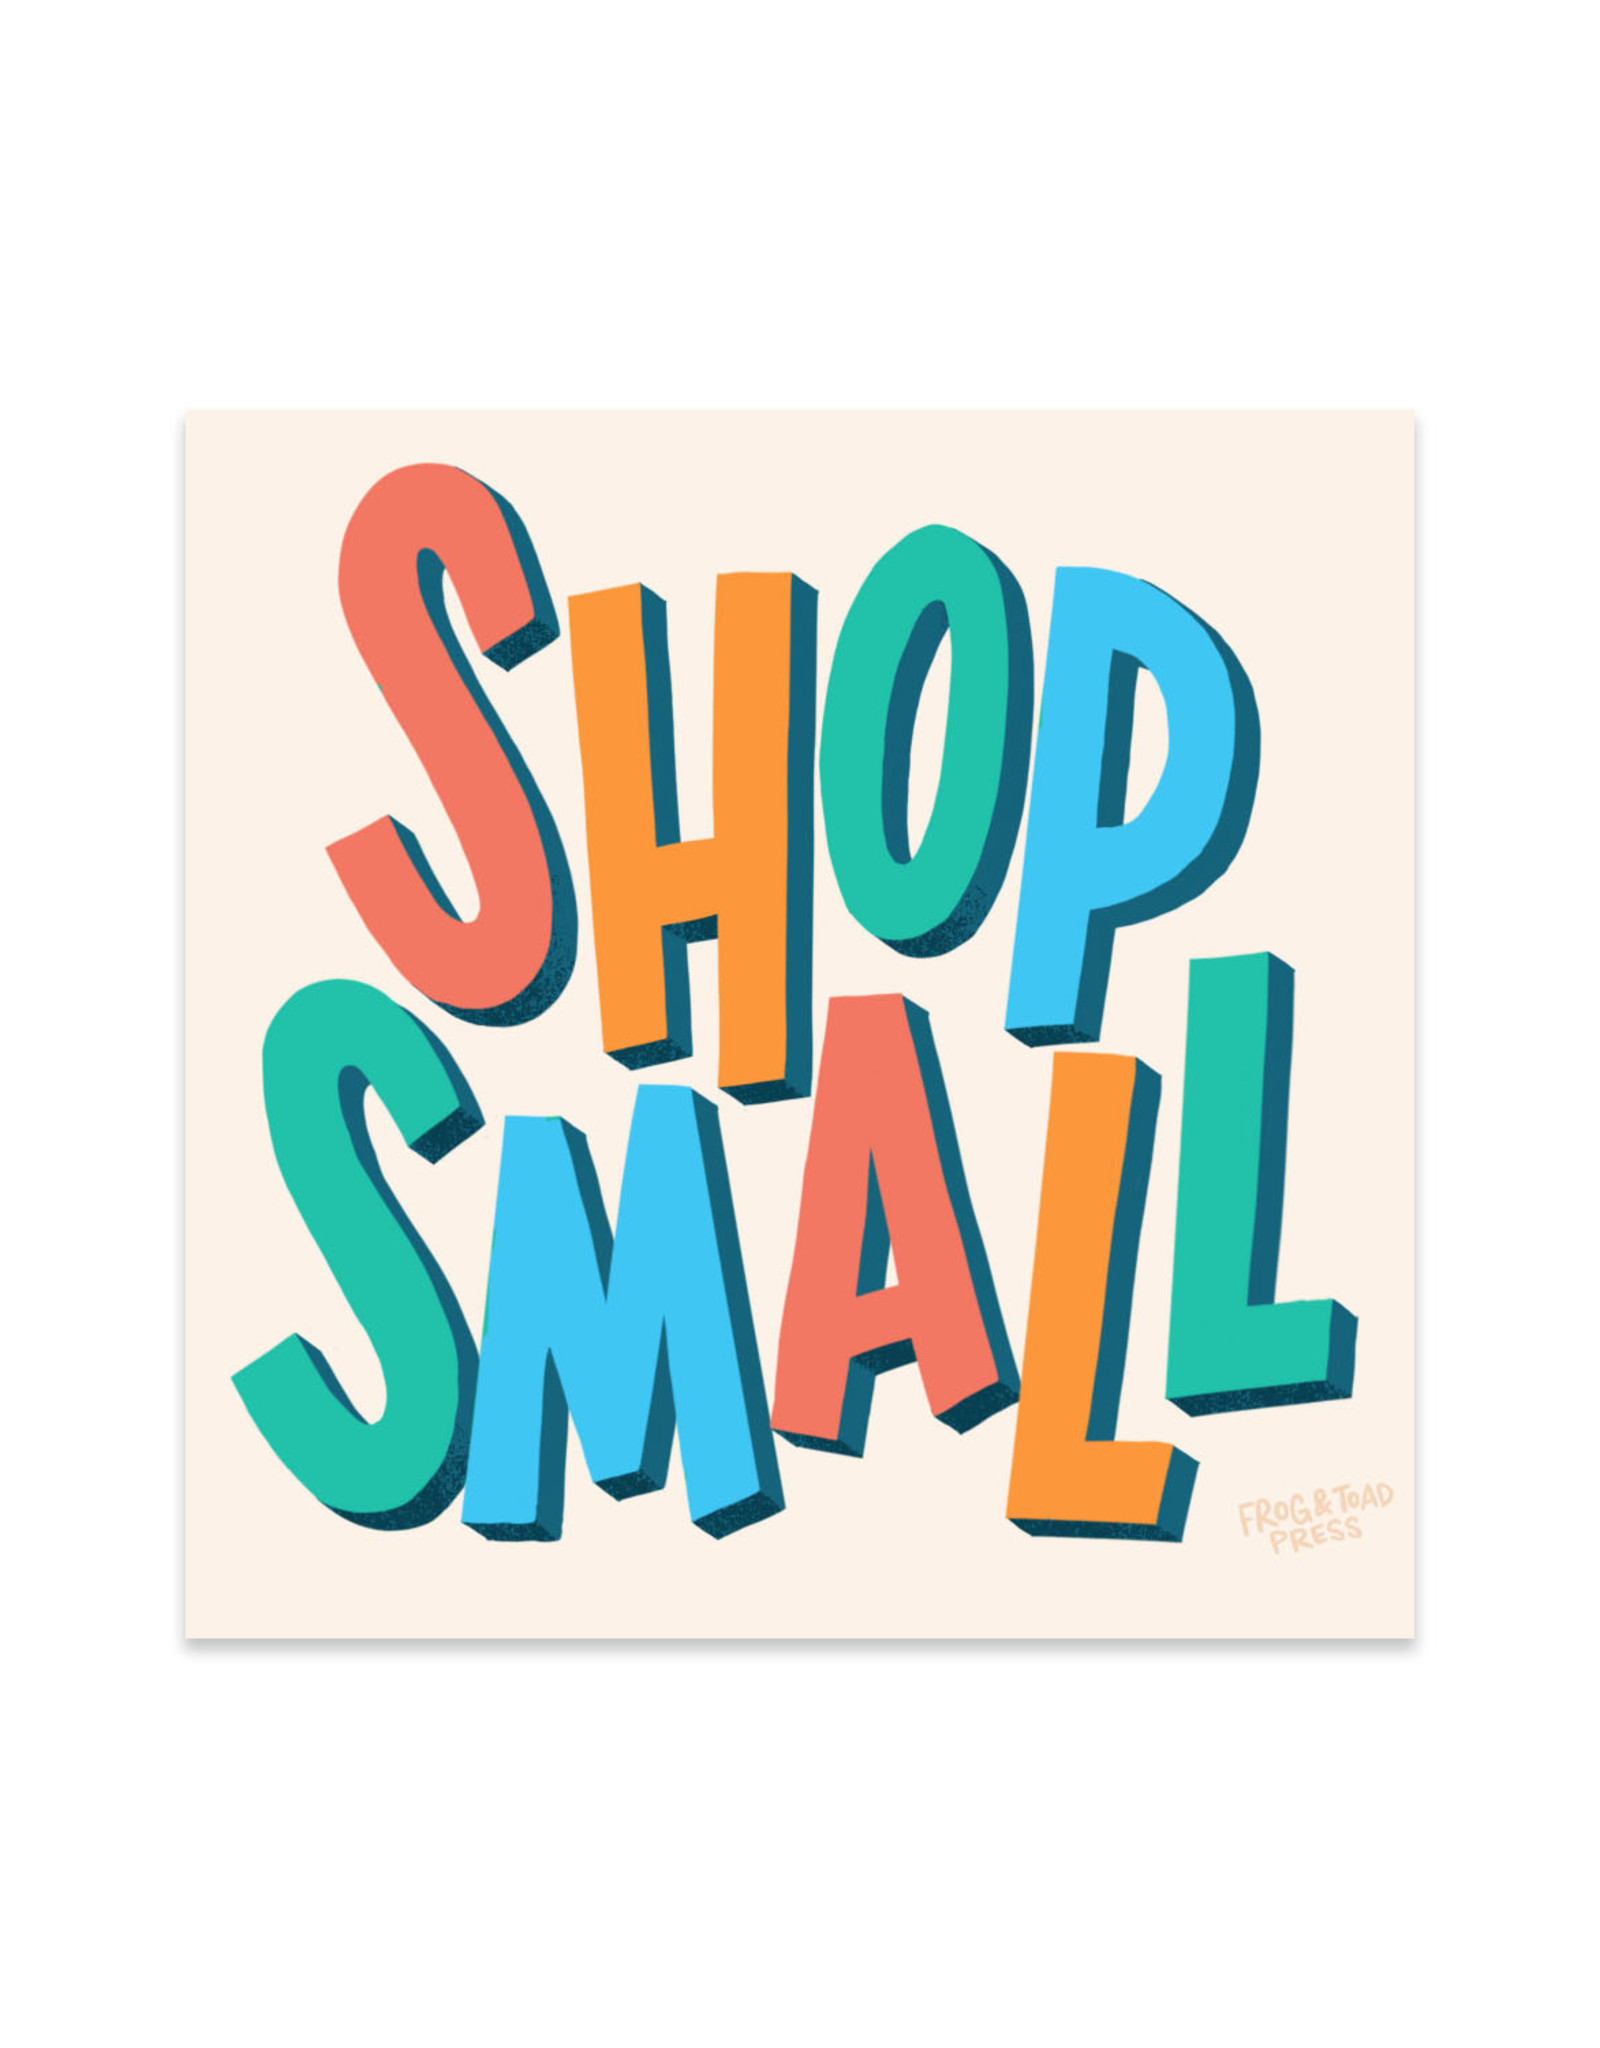 Shop Small Sticker